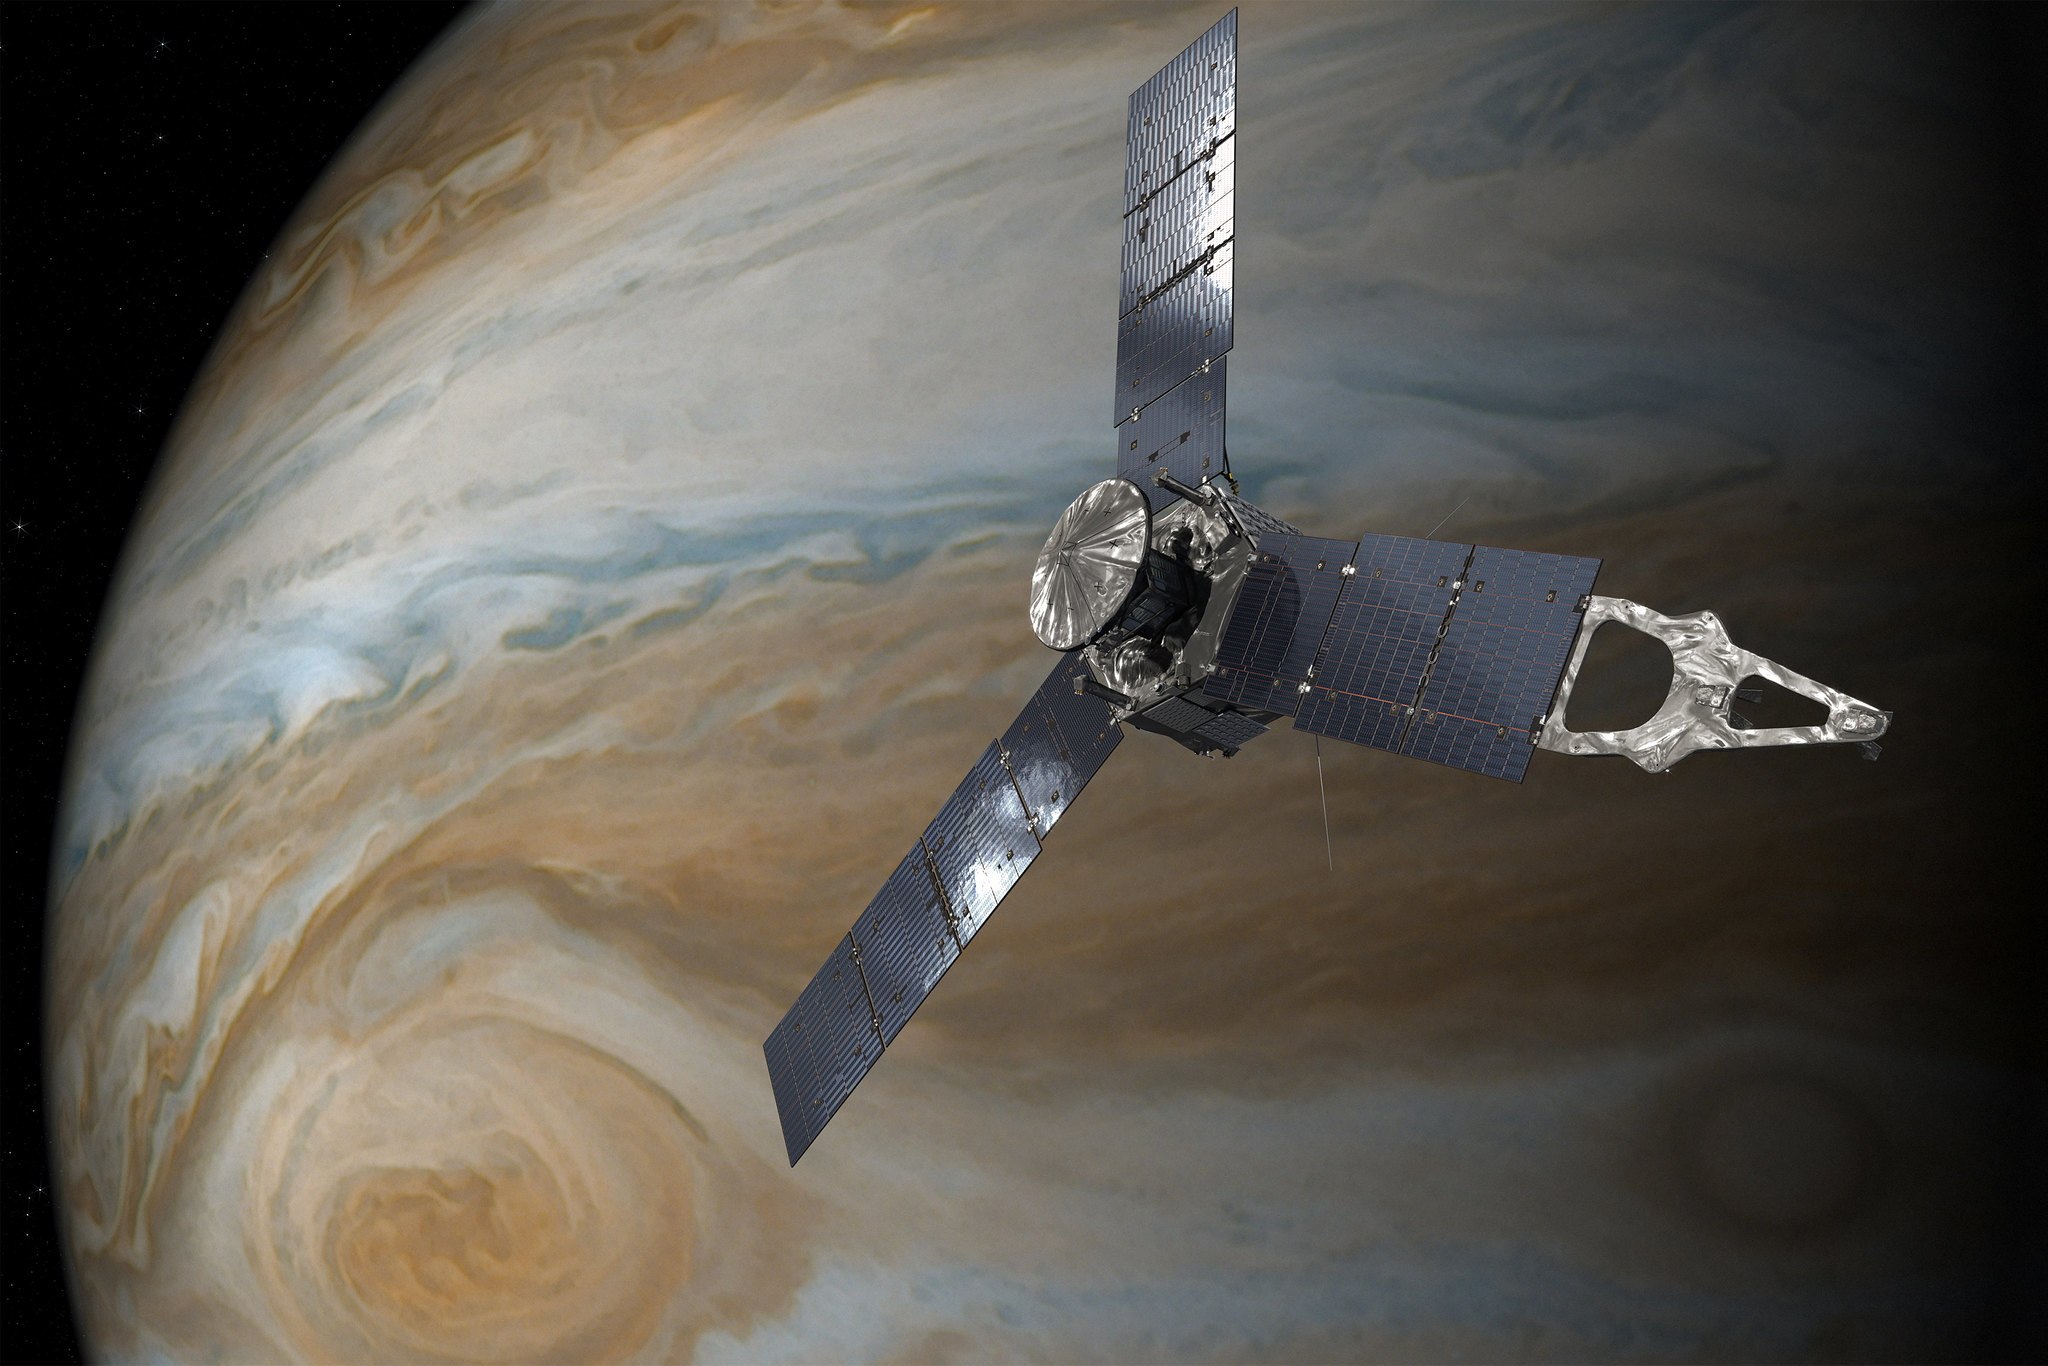 Jupiter Cyclone Storms Captured By Juno In Another Stunning Image